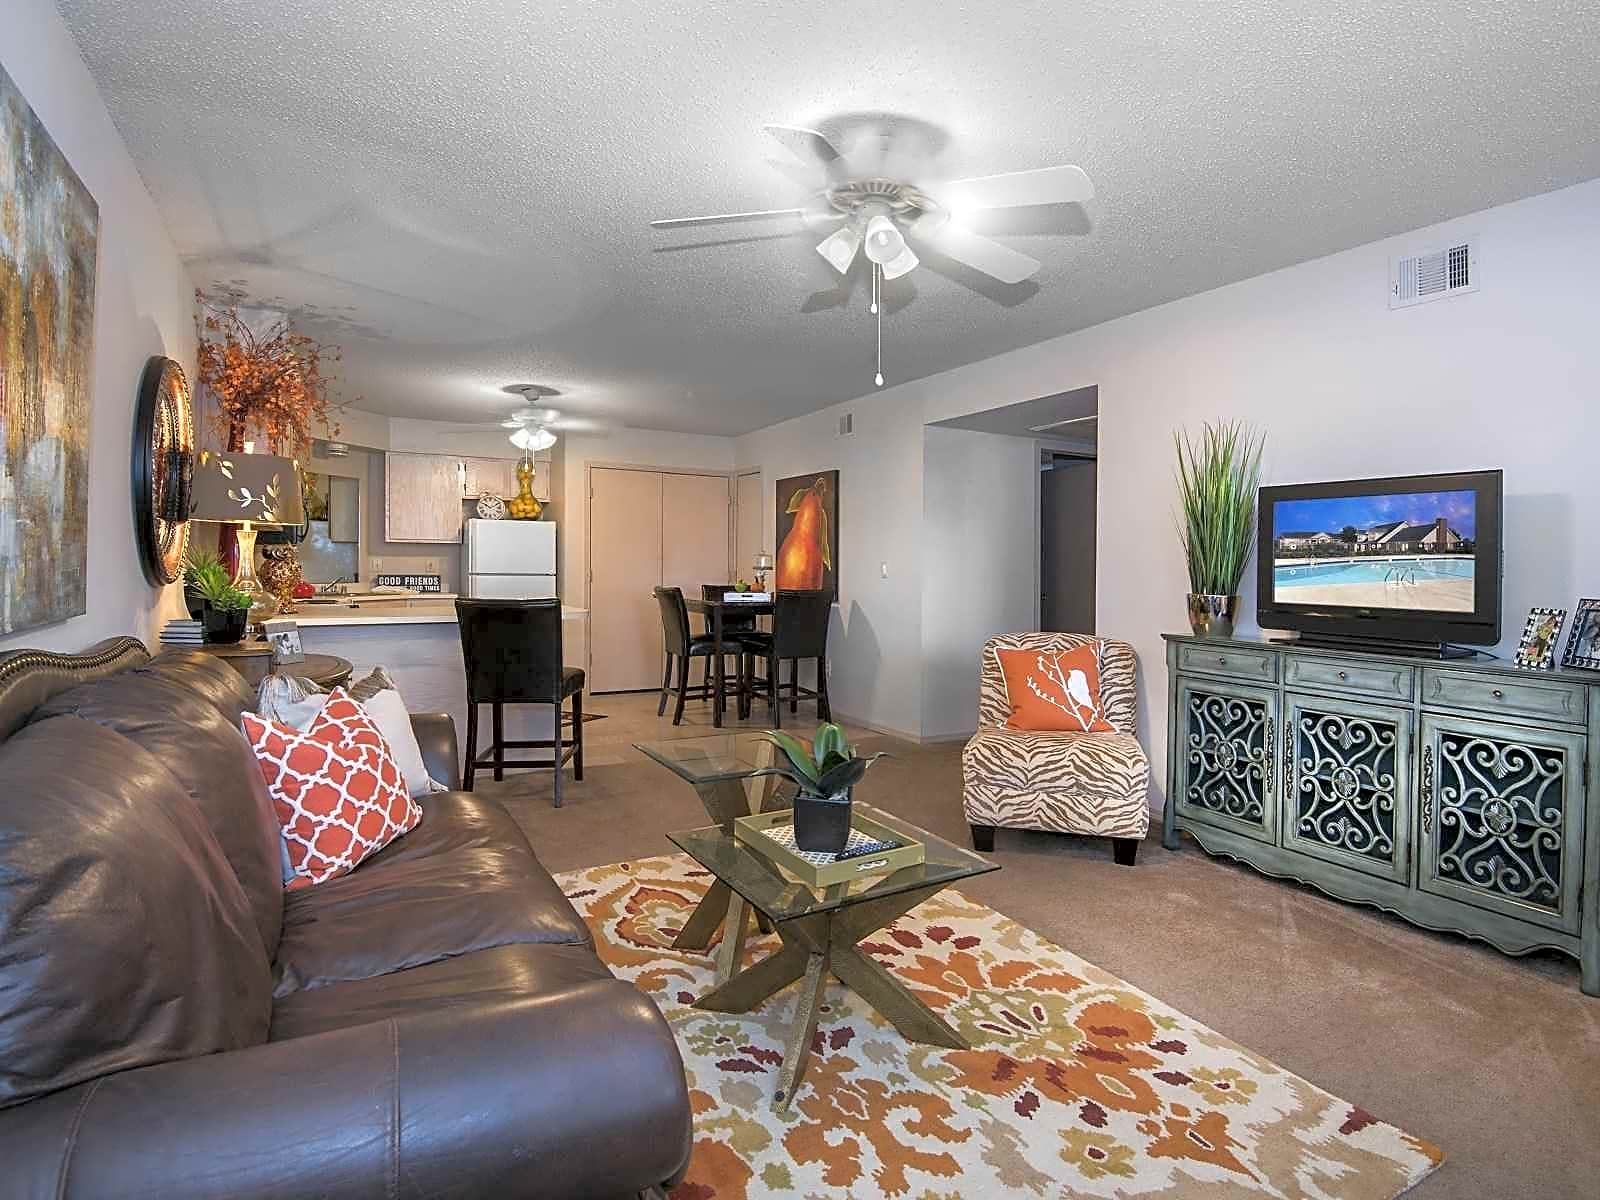 Apartments Near Hendrix Centennial Valley I/II for Hendrix College Students in Conway, AR